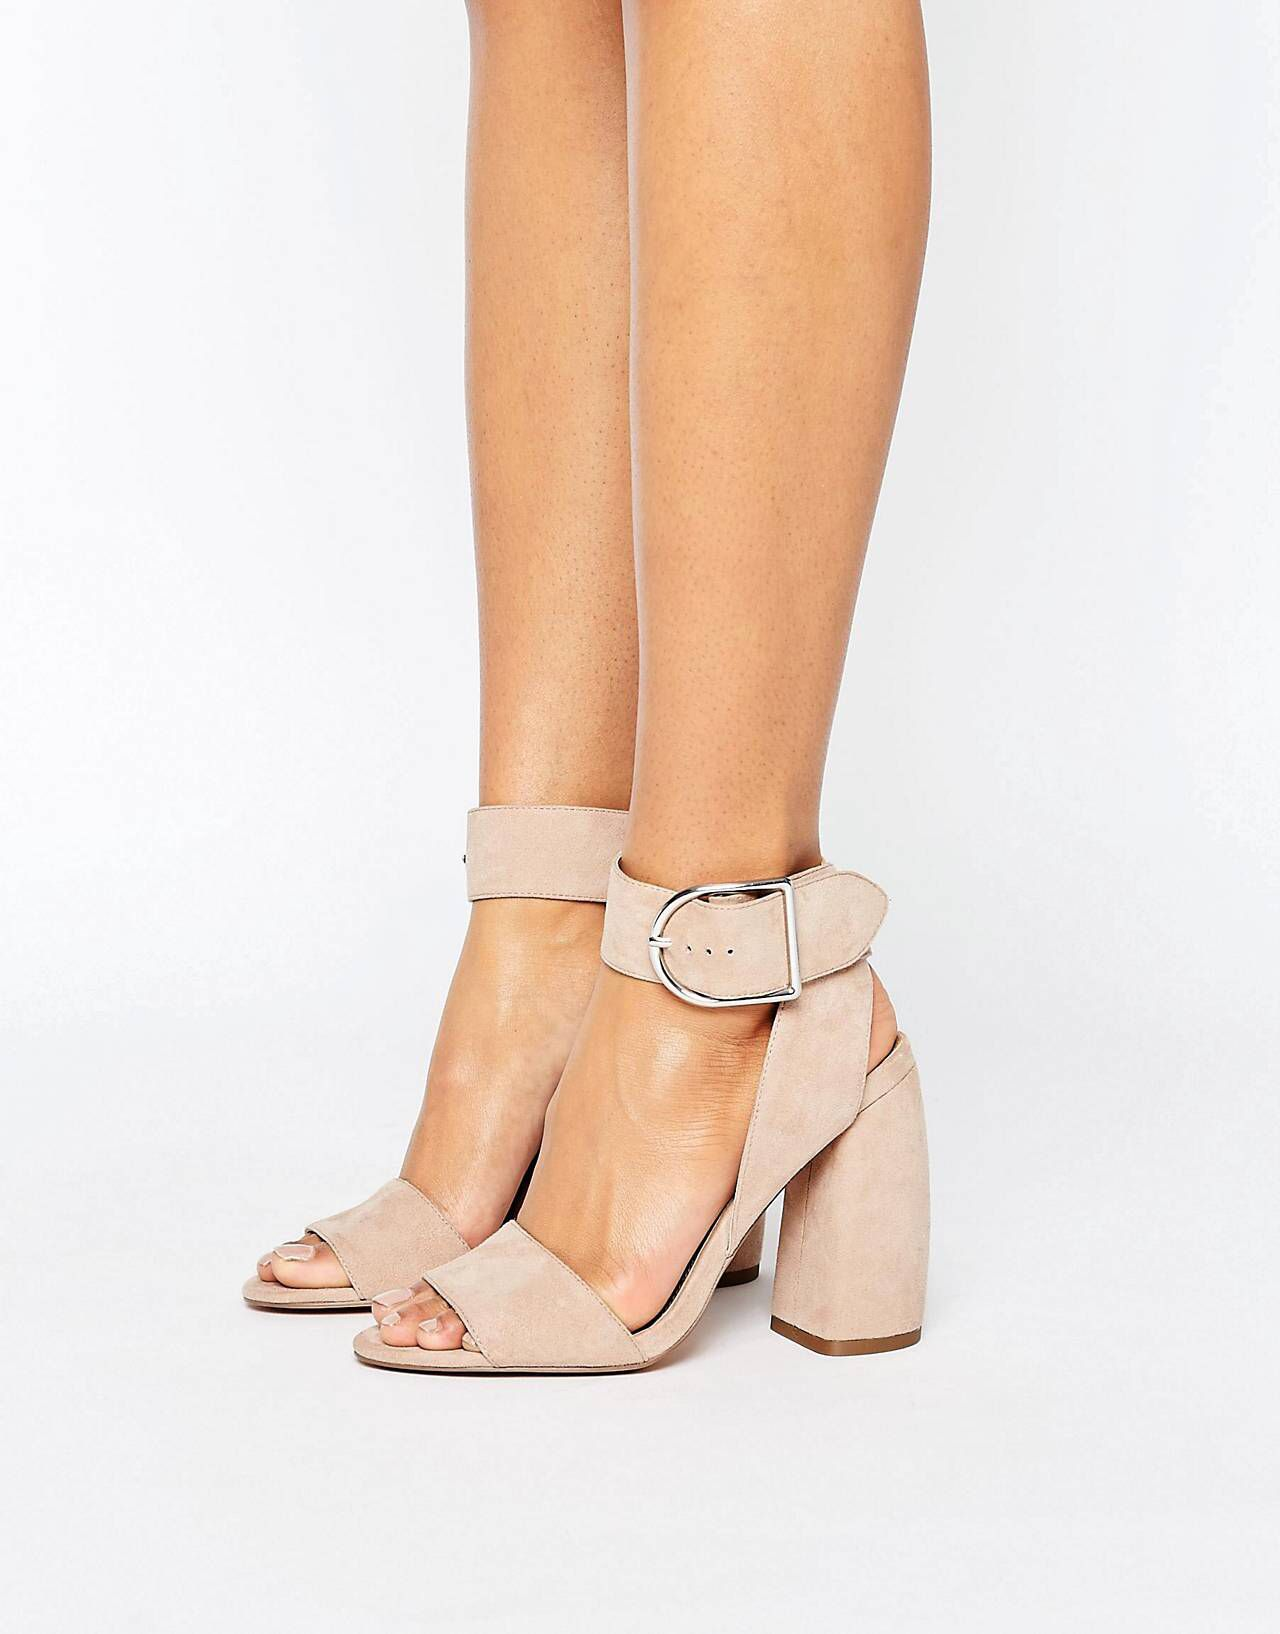 fef366c5e LOVE this from ASOS! | Want | Shoes, Asos shoes, Heels